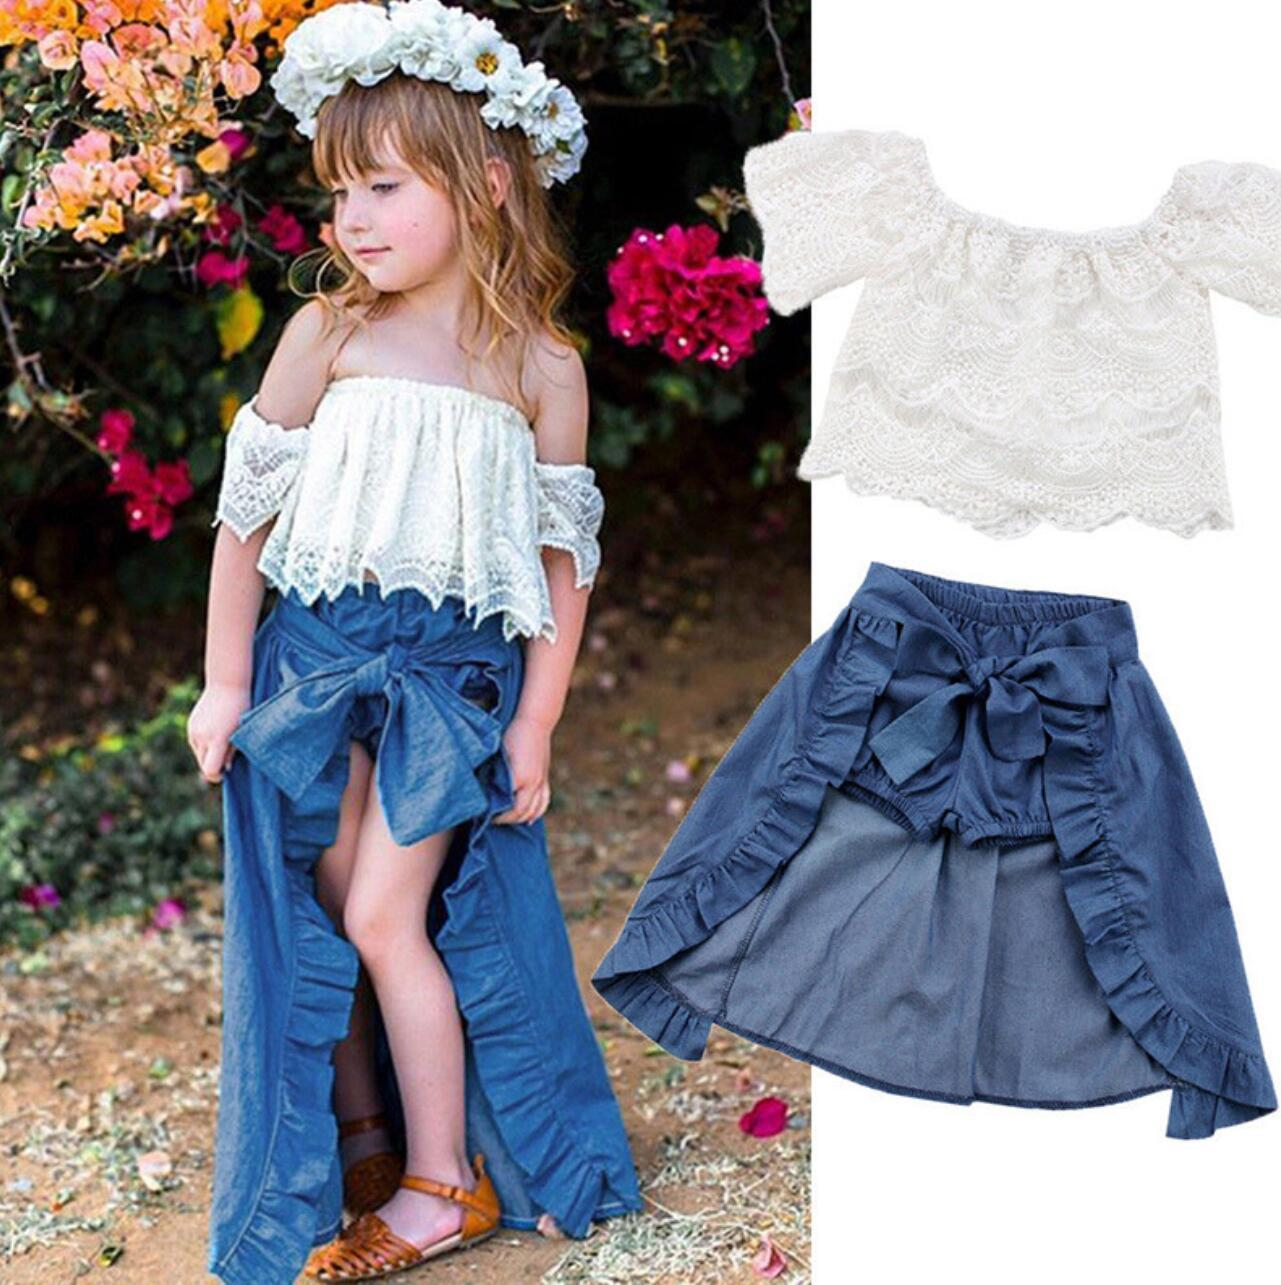 7d51f3e4f5b 2019 New Girl Clothing Set Children Off Shoulder Lace Top And Denim Shorts  Ruffles Bow Skirt Outfit Kids Clothes From Leilar